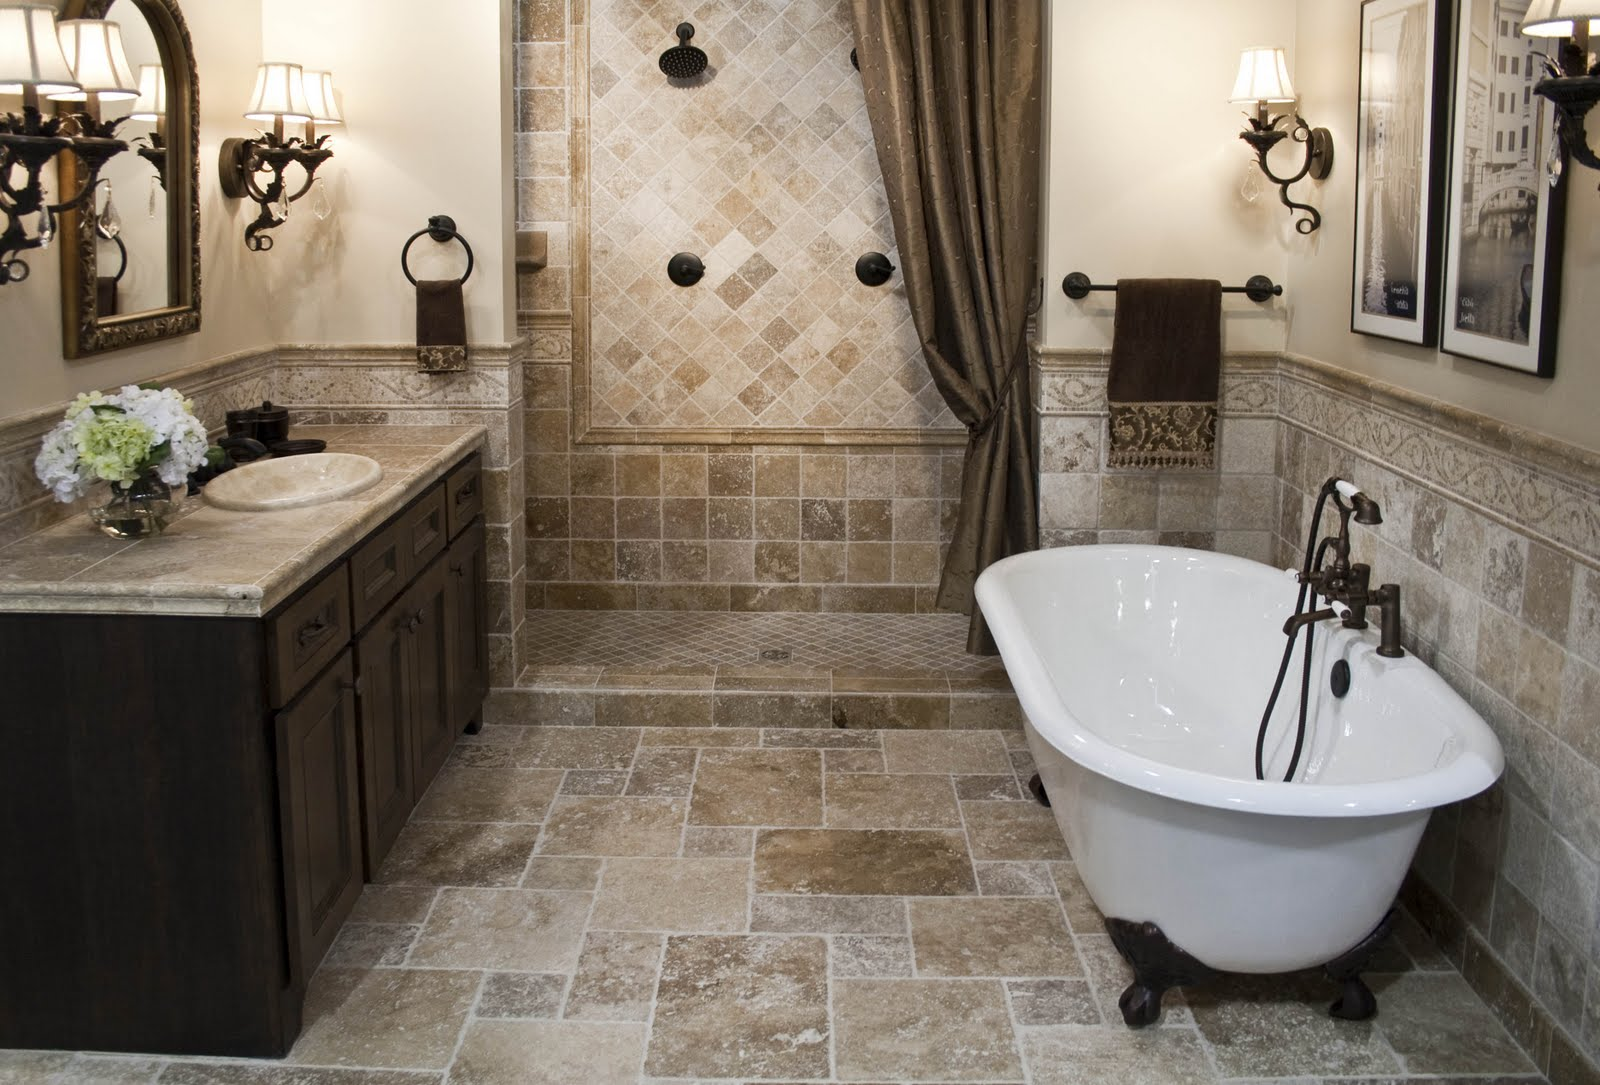 Tips For DIY Bathroom Renovations On A Budget - Bathroom redos on a budget